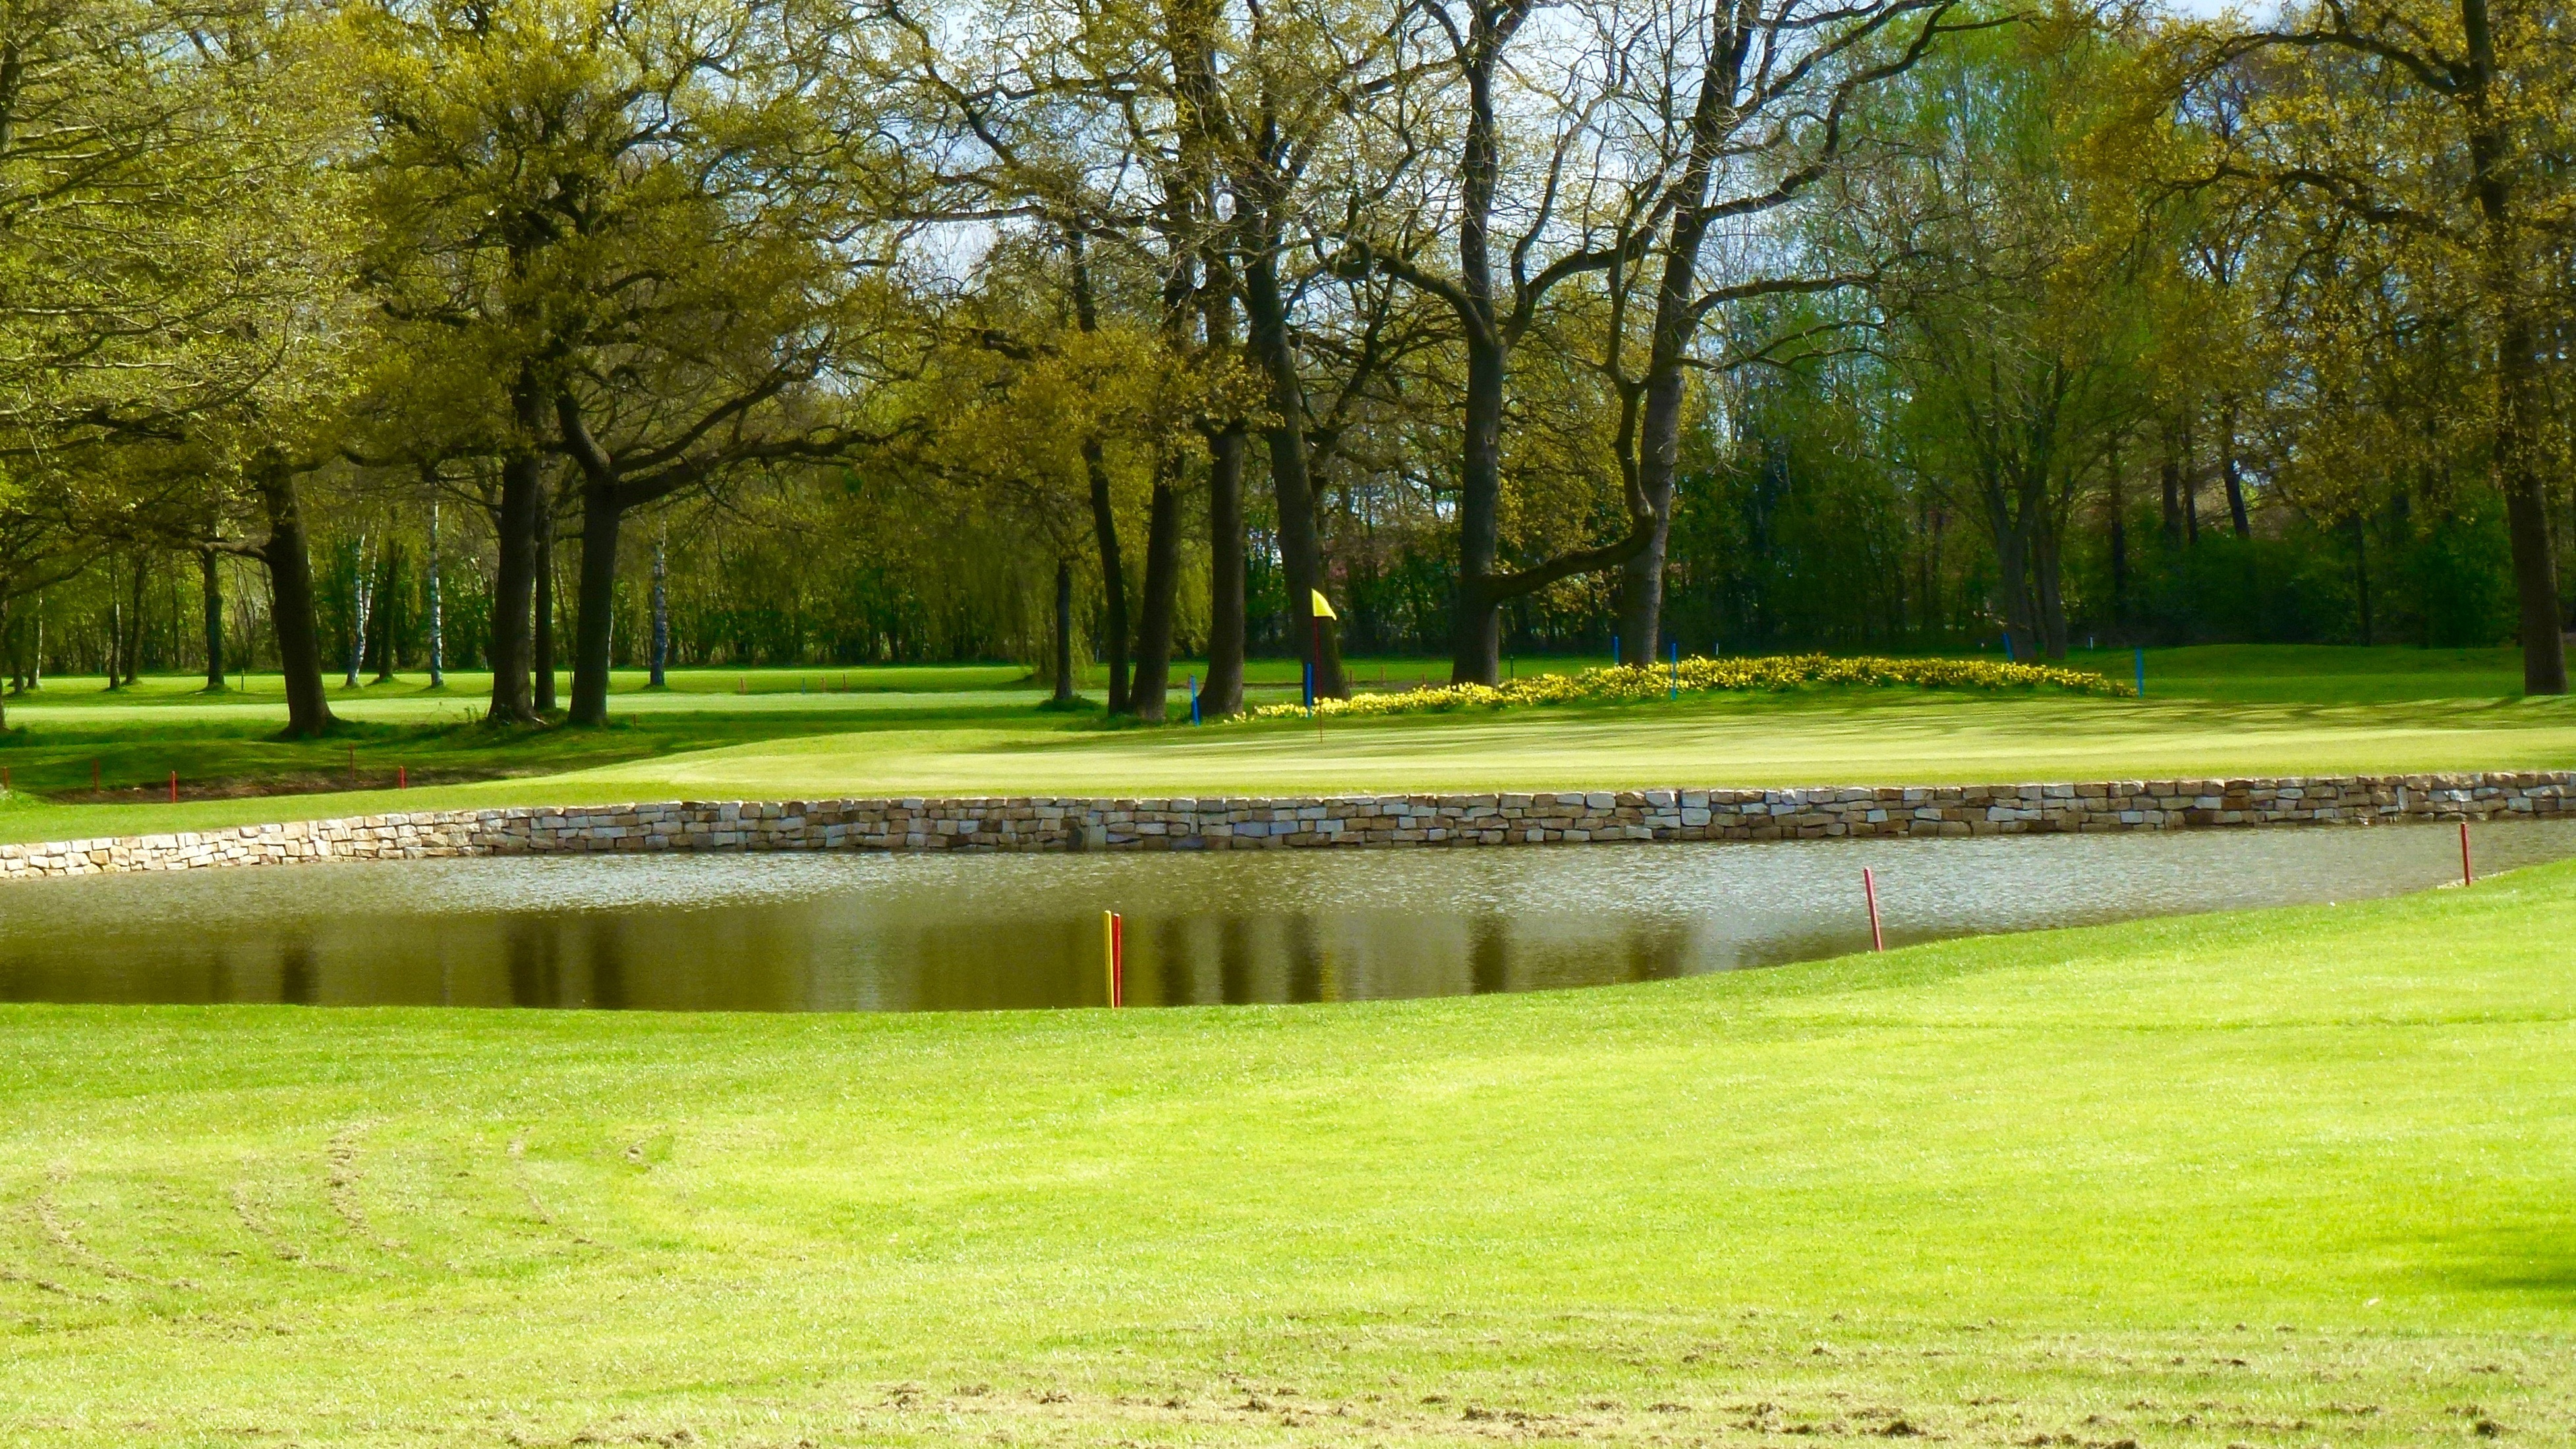 Overview of golf course named Golfclub Marienfeld e.V.